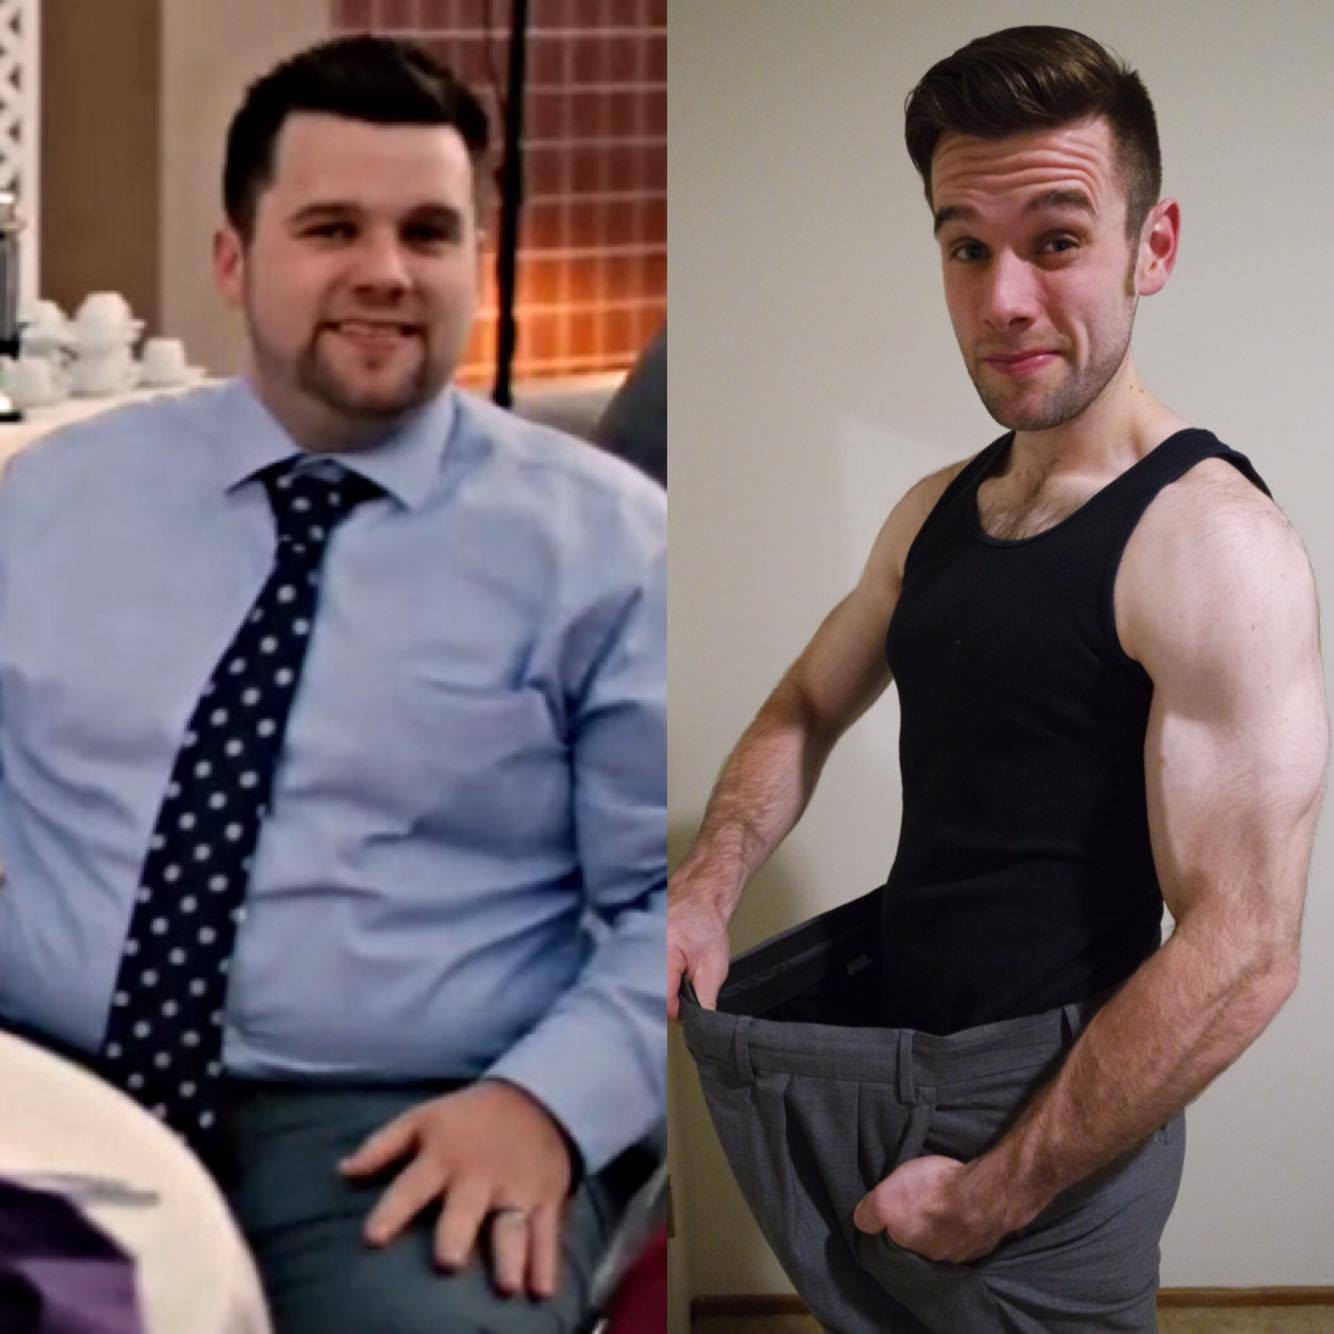 How I Went From Obese To Lean Start 2016 With The Right Mindset